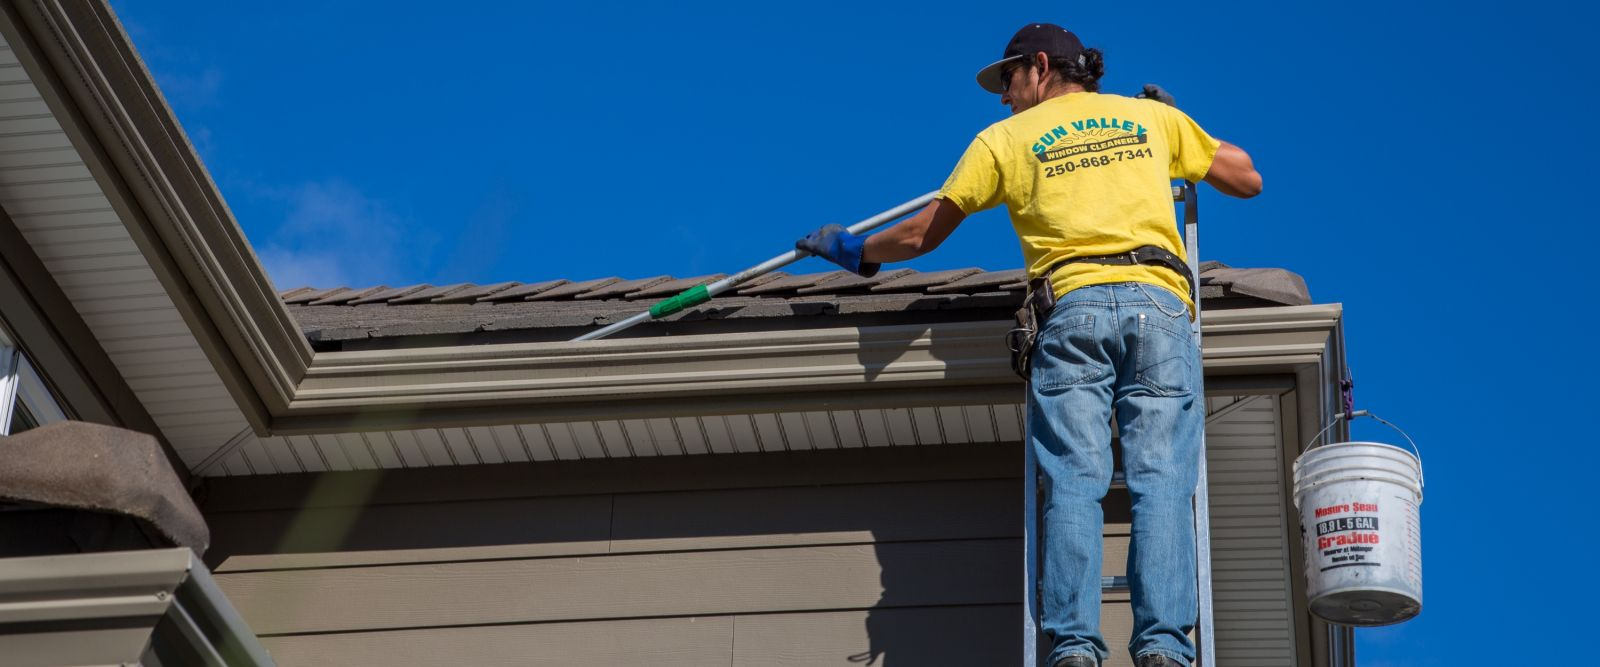 Commercial gutter cleaning in Kelowna from an extension ladder